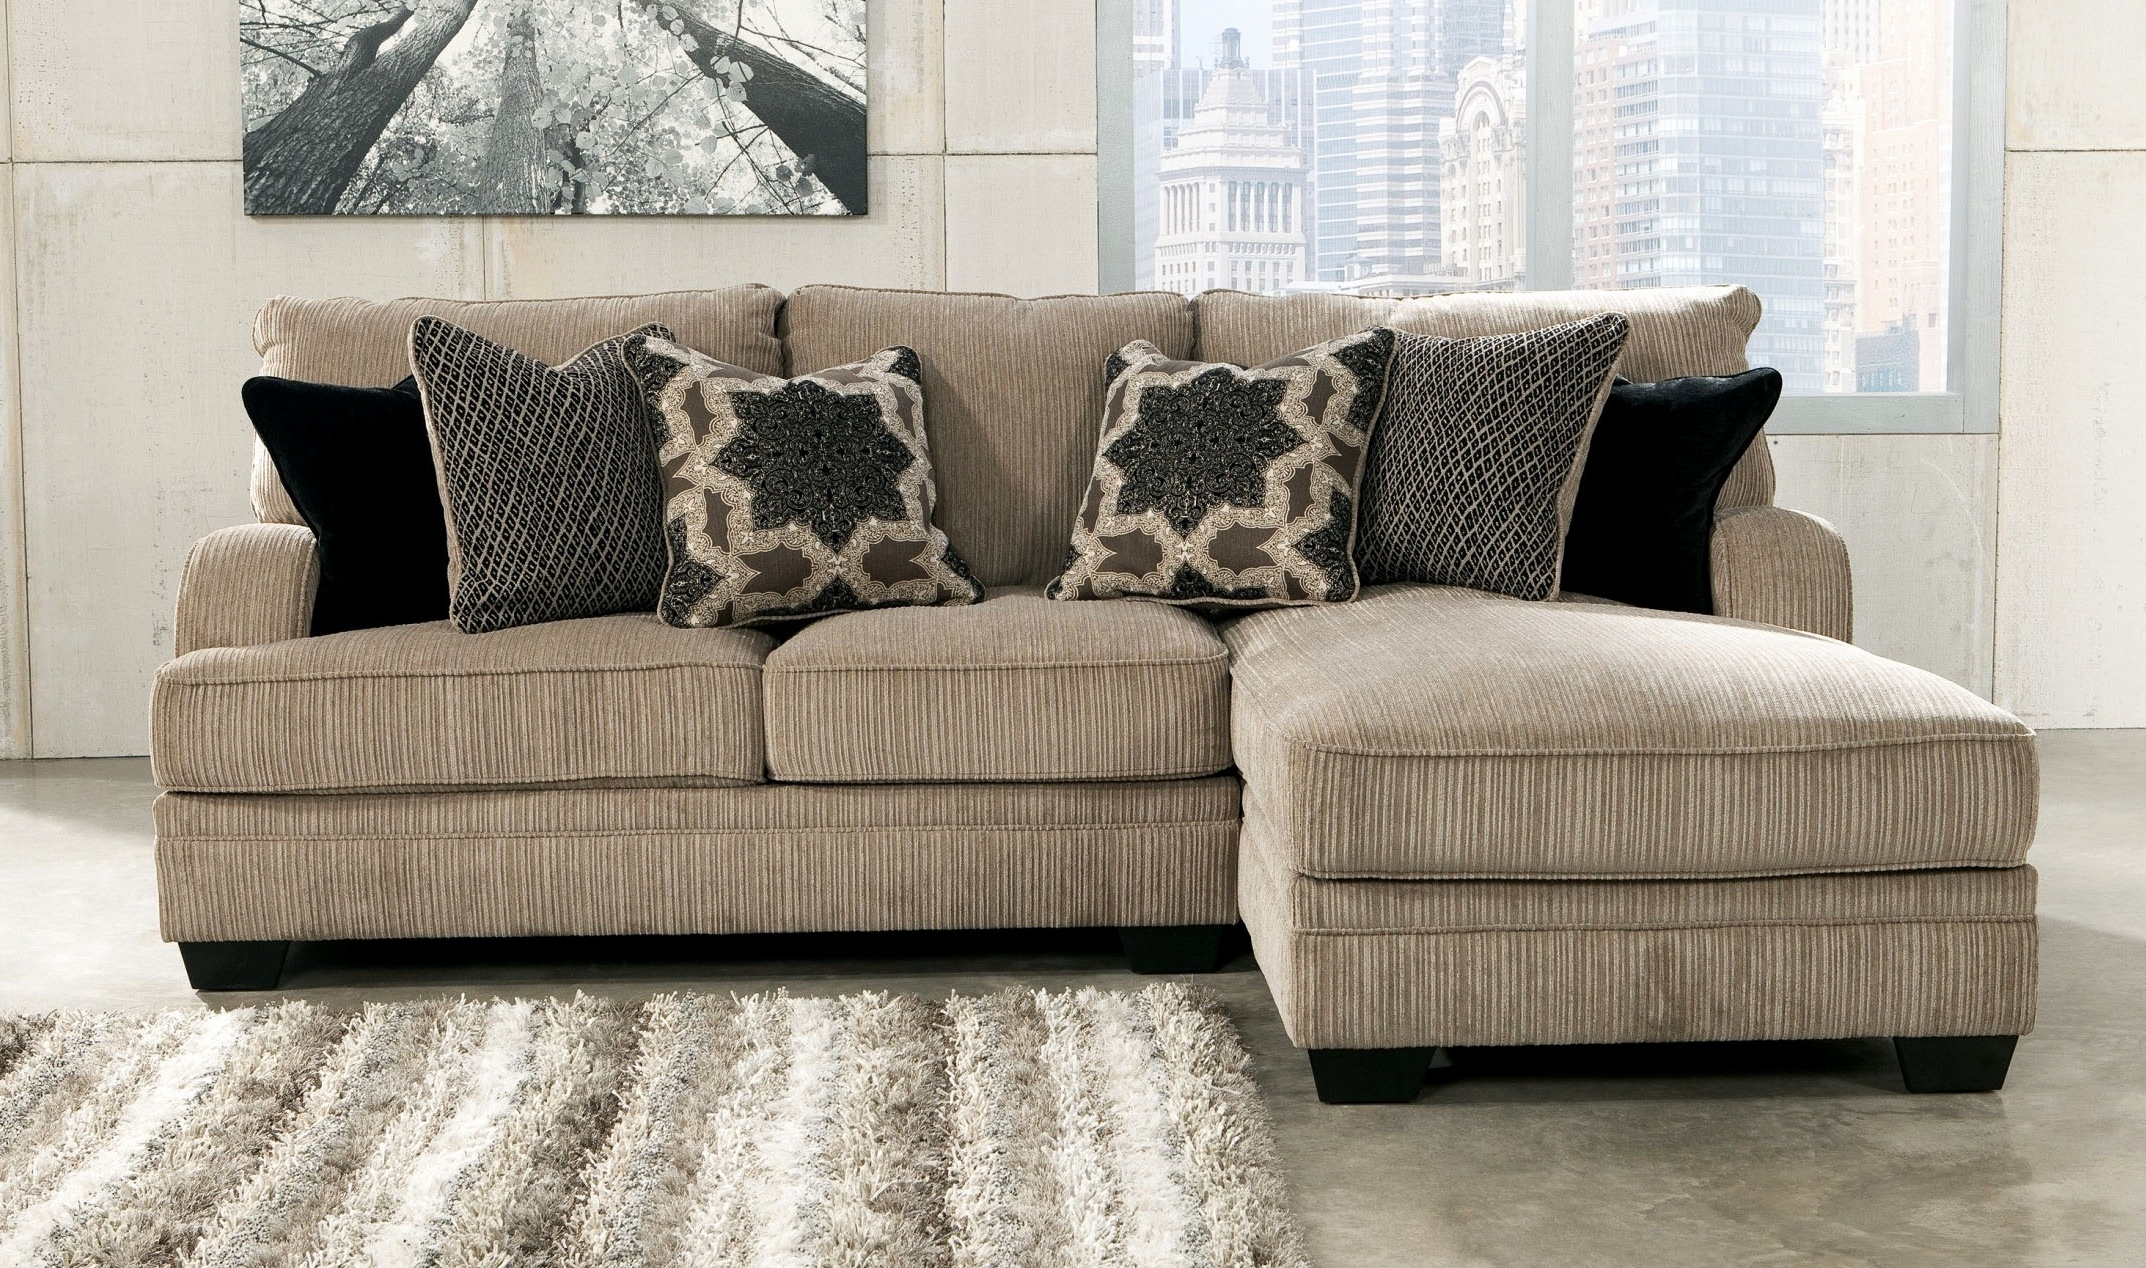 Fashionable Fresh Sectional Sofa Beds For Small Spaces 2018 – Couches And Inside Small Modular Sectional Sofas (View 2 of 20)